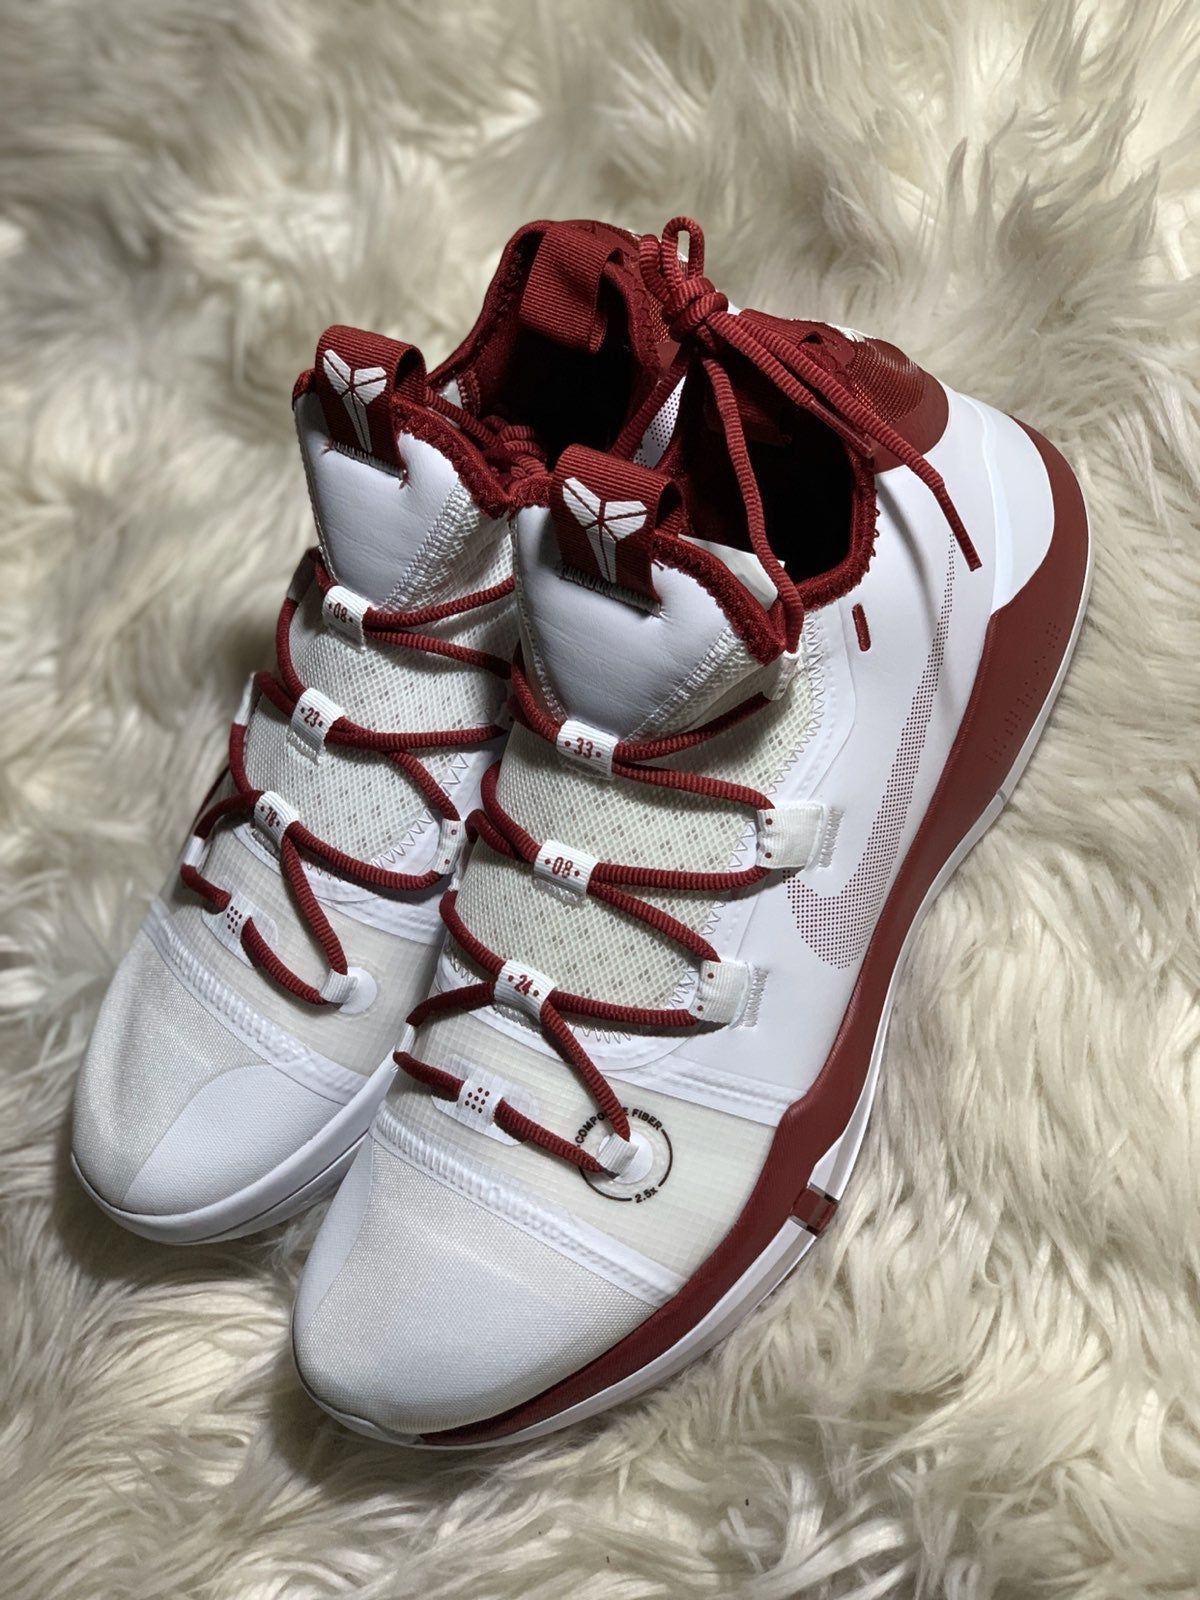 """Thank you for considering our store! We appreciate your business and support! For Sale: Nike Kobe Bryant AD TB Basketball Shoes White / Red AT3874-109 Men's 12.5 Men's Size 14.5 Also available! Please check out our other listings for other available sizes Condition: New without box Shipped to you fast via USPS Priority Mail We consider all resonable offers! With that said, we invite you to """"watch"""" our items to receive special offers sent directly to you! Thank you for visiting!"""